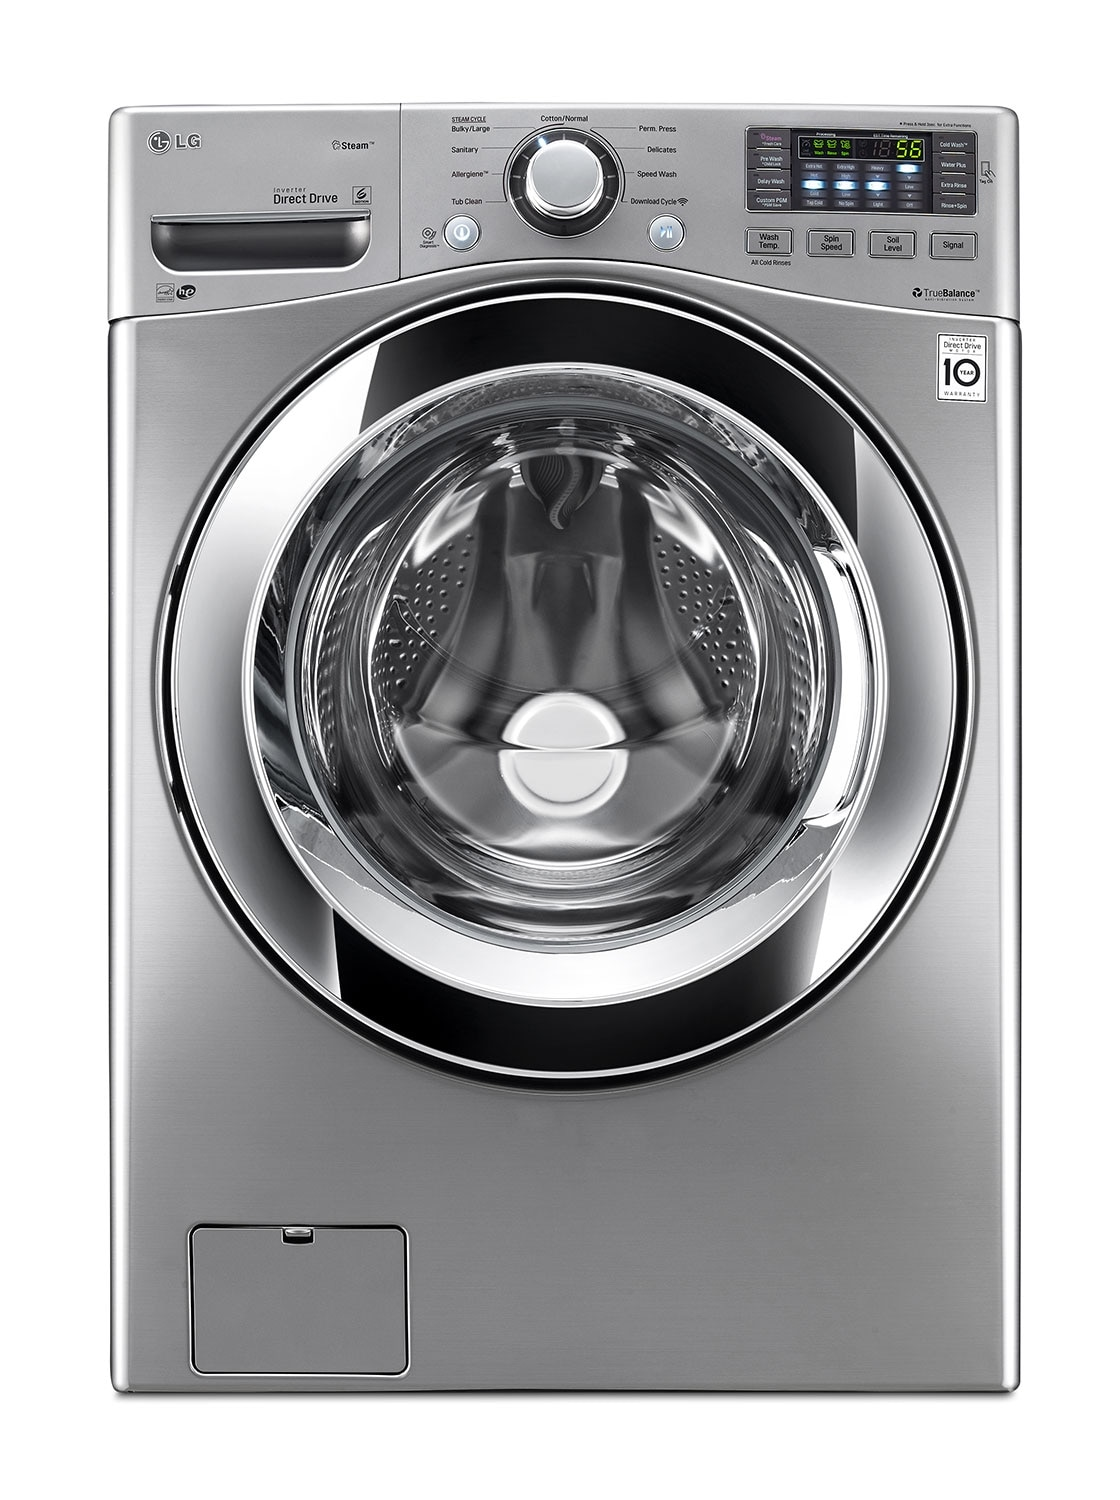 LG Appiances Graphite Steel Front-Load Washer (5.0 Cu. Ft.) - WM3370HVA